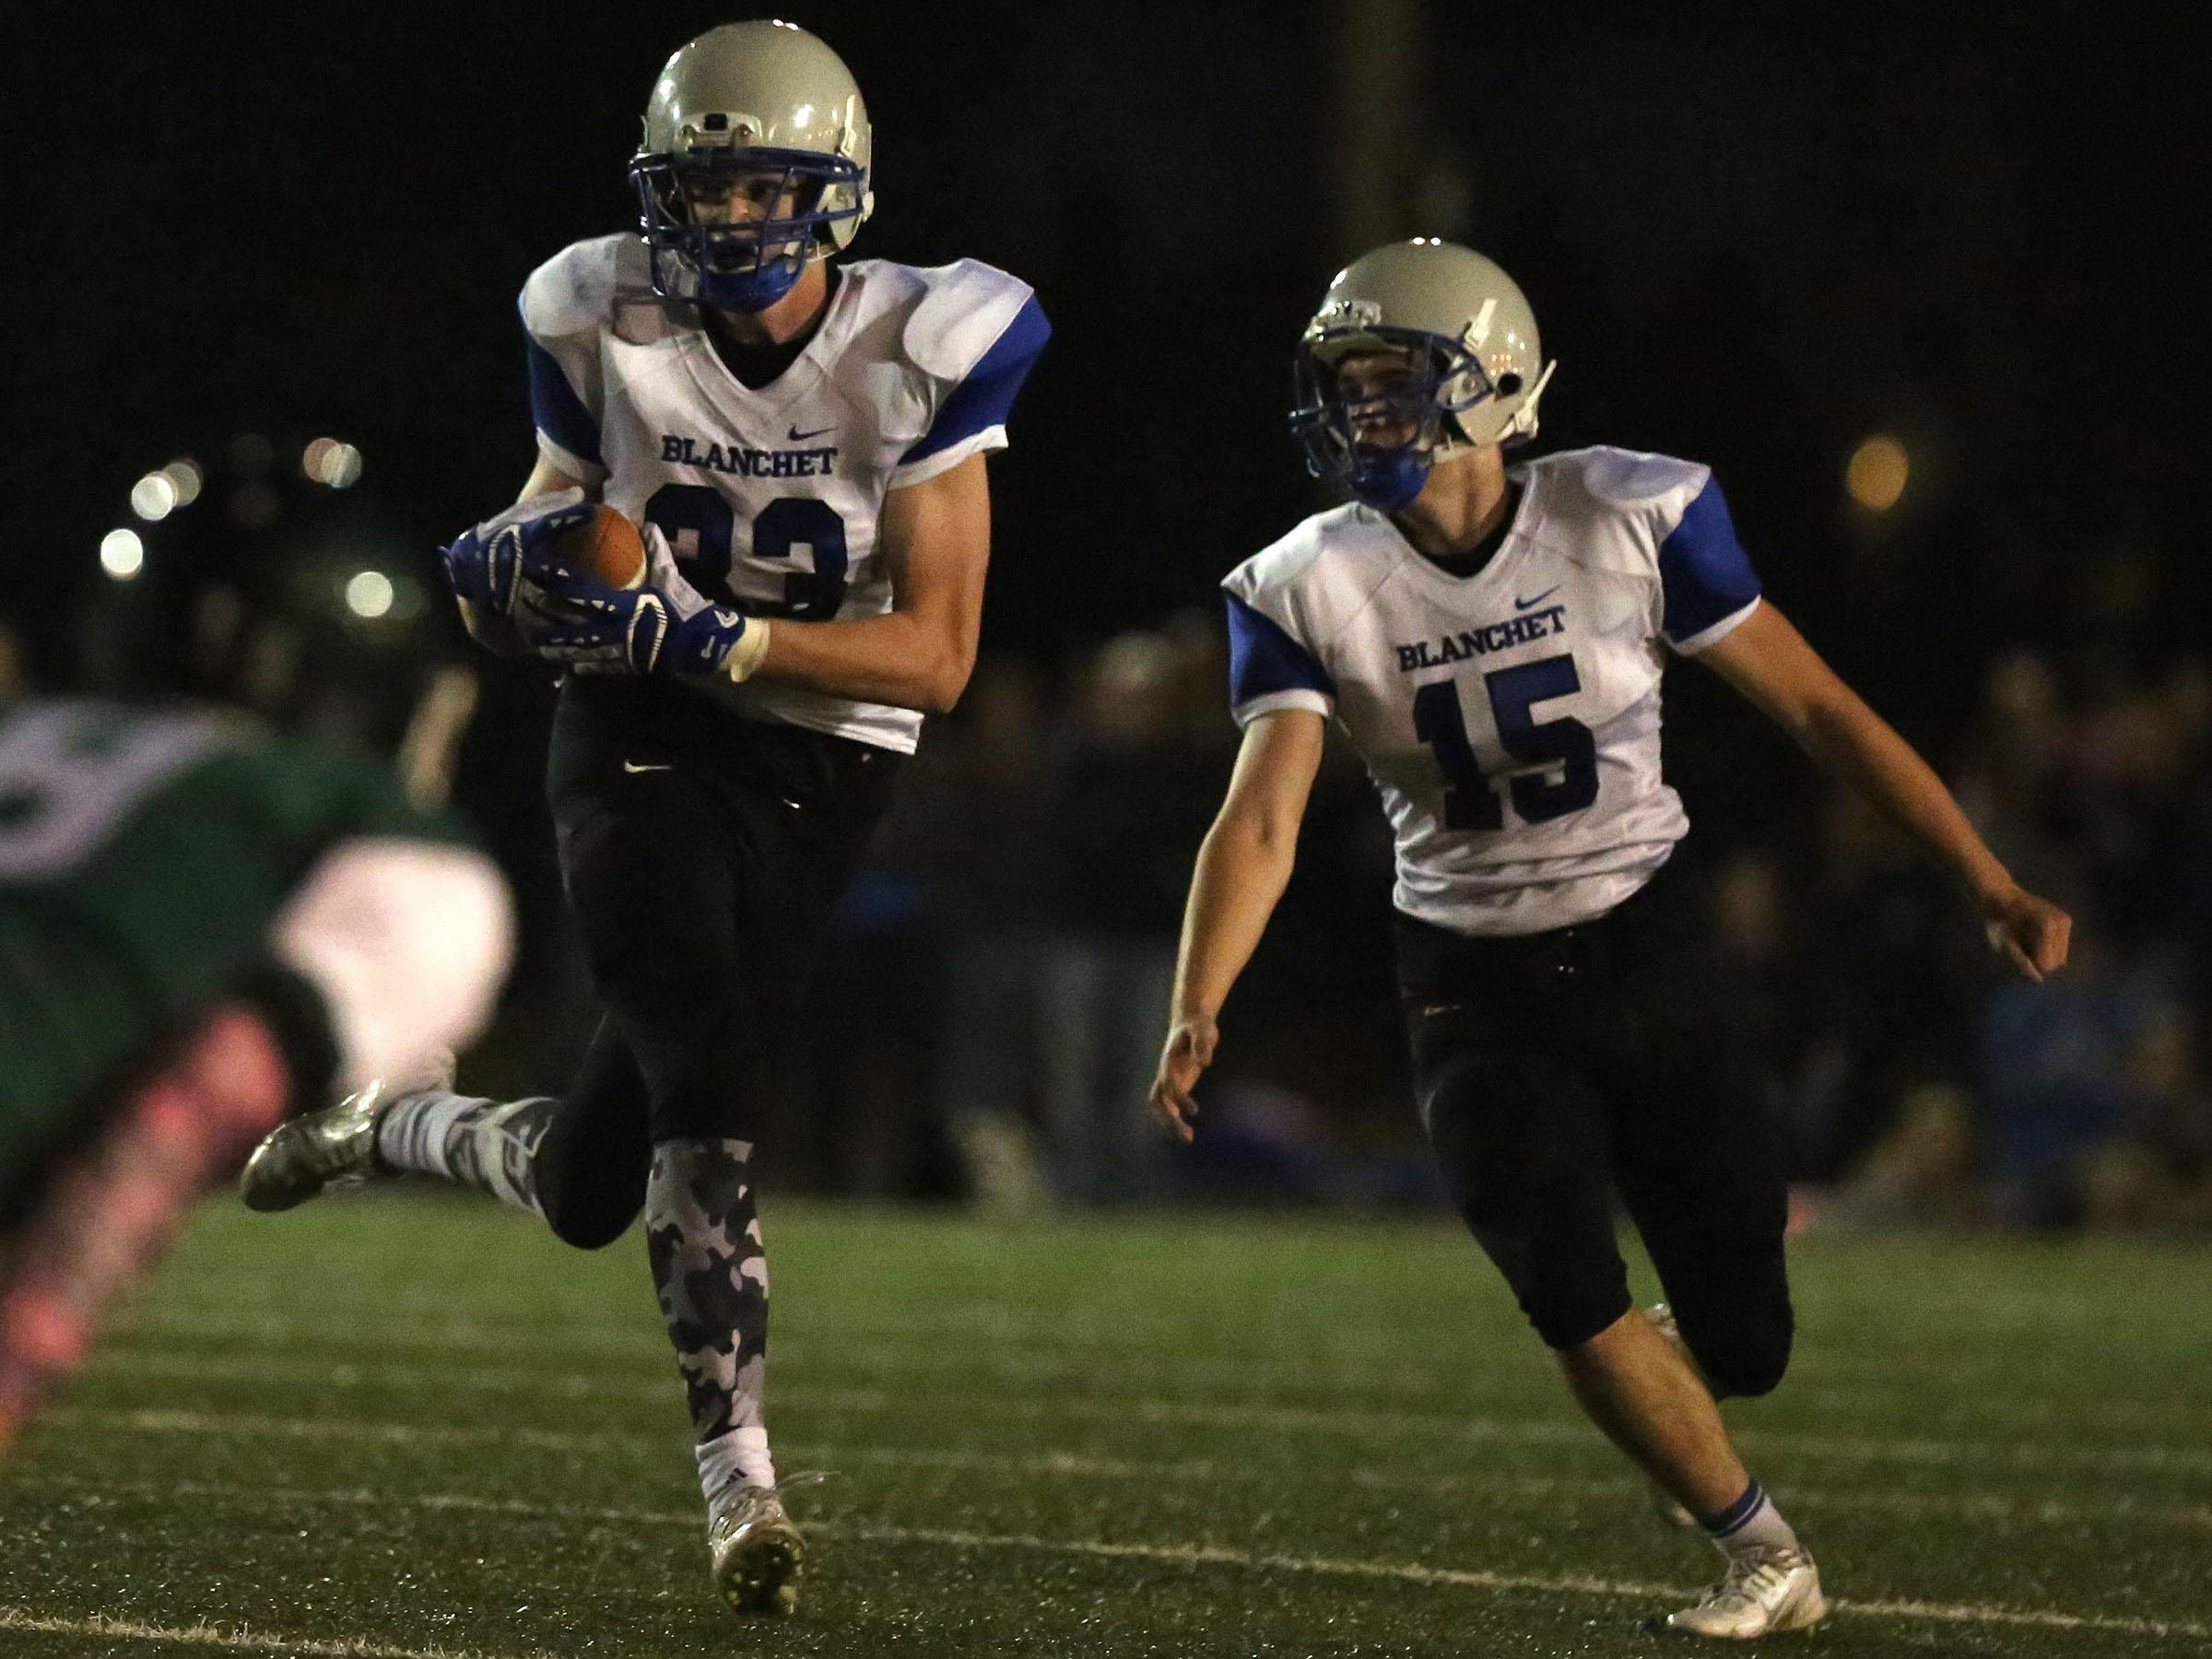 Blanchet's Ben Bartch runs the ball on Friday, Oct. 16, 2015, in Salem, Ore.